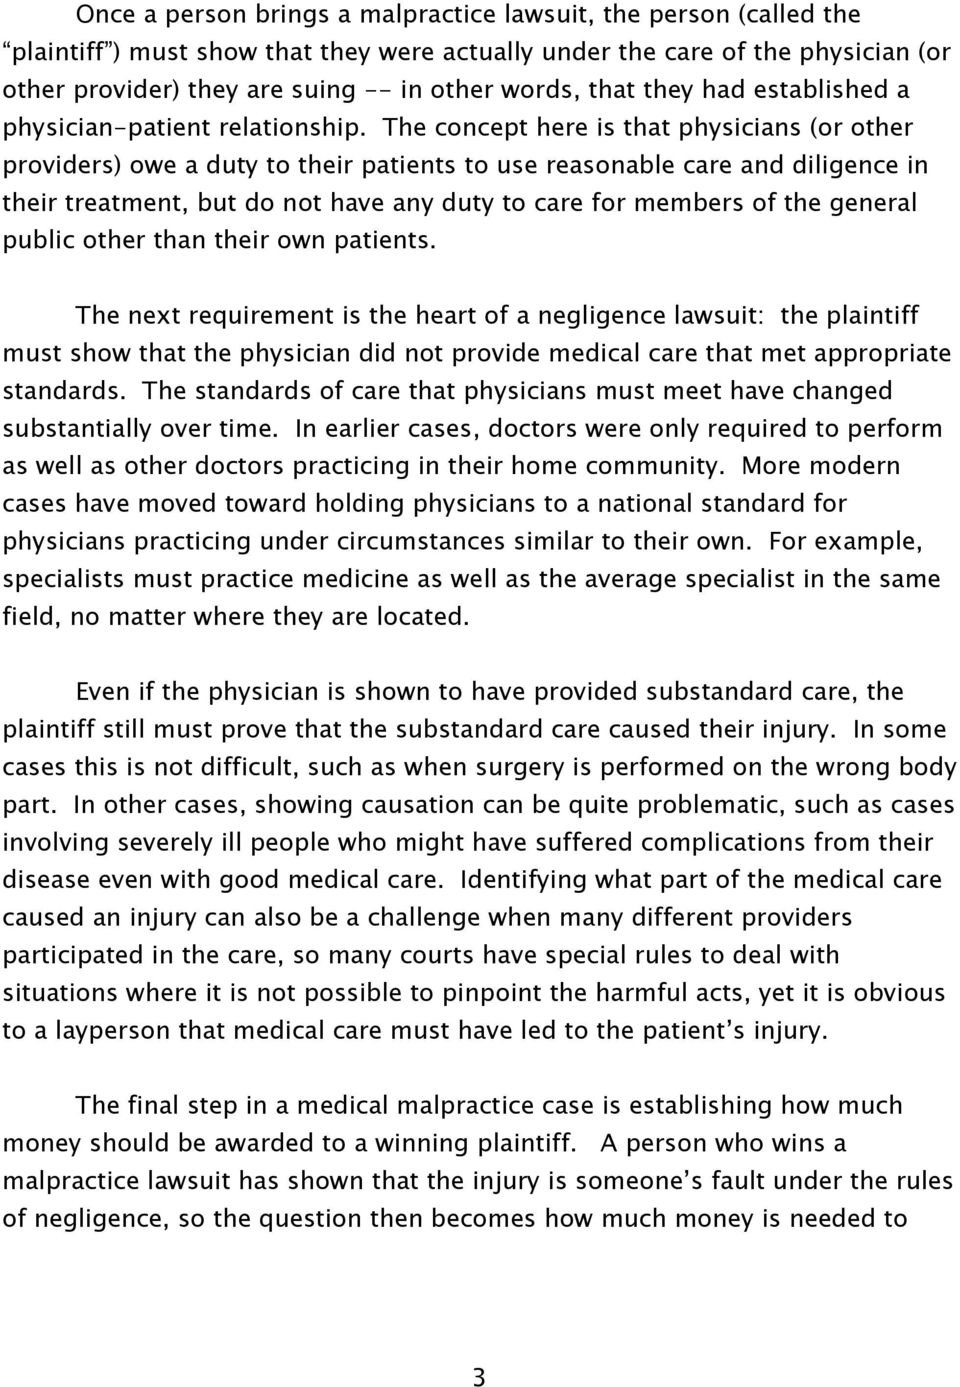 The concept here is that physicians (or other providers) owe a duty to their patients to use reasonable care and diligence in their treatment, but do not have any duty to care for members of the